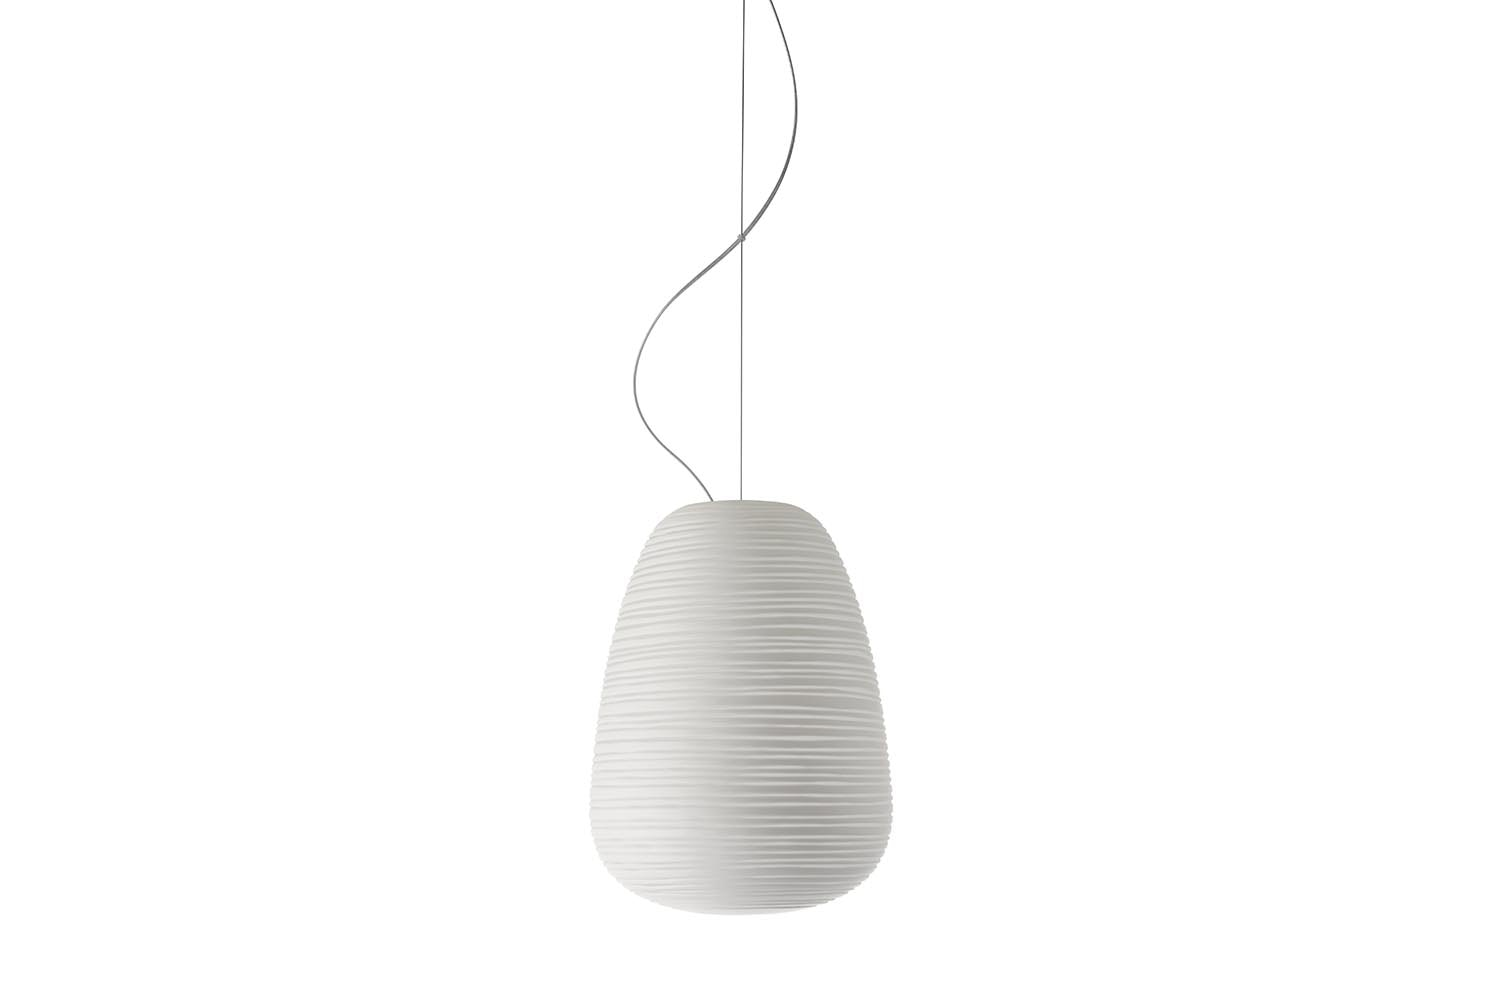 Rituals 1 Suspension Lamp by Ludovica & Roberto Palomba for Foscarini